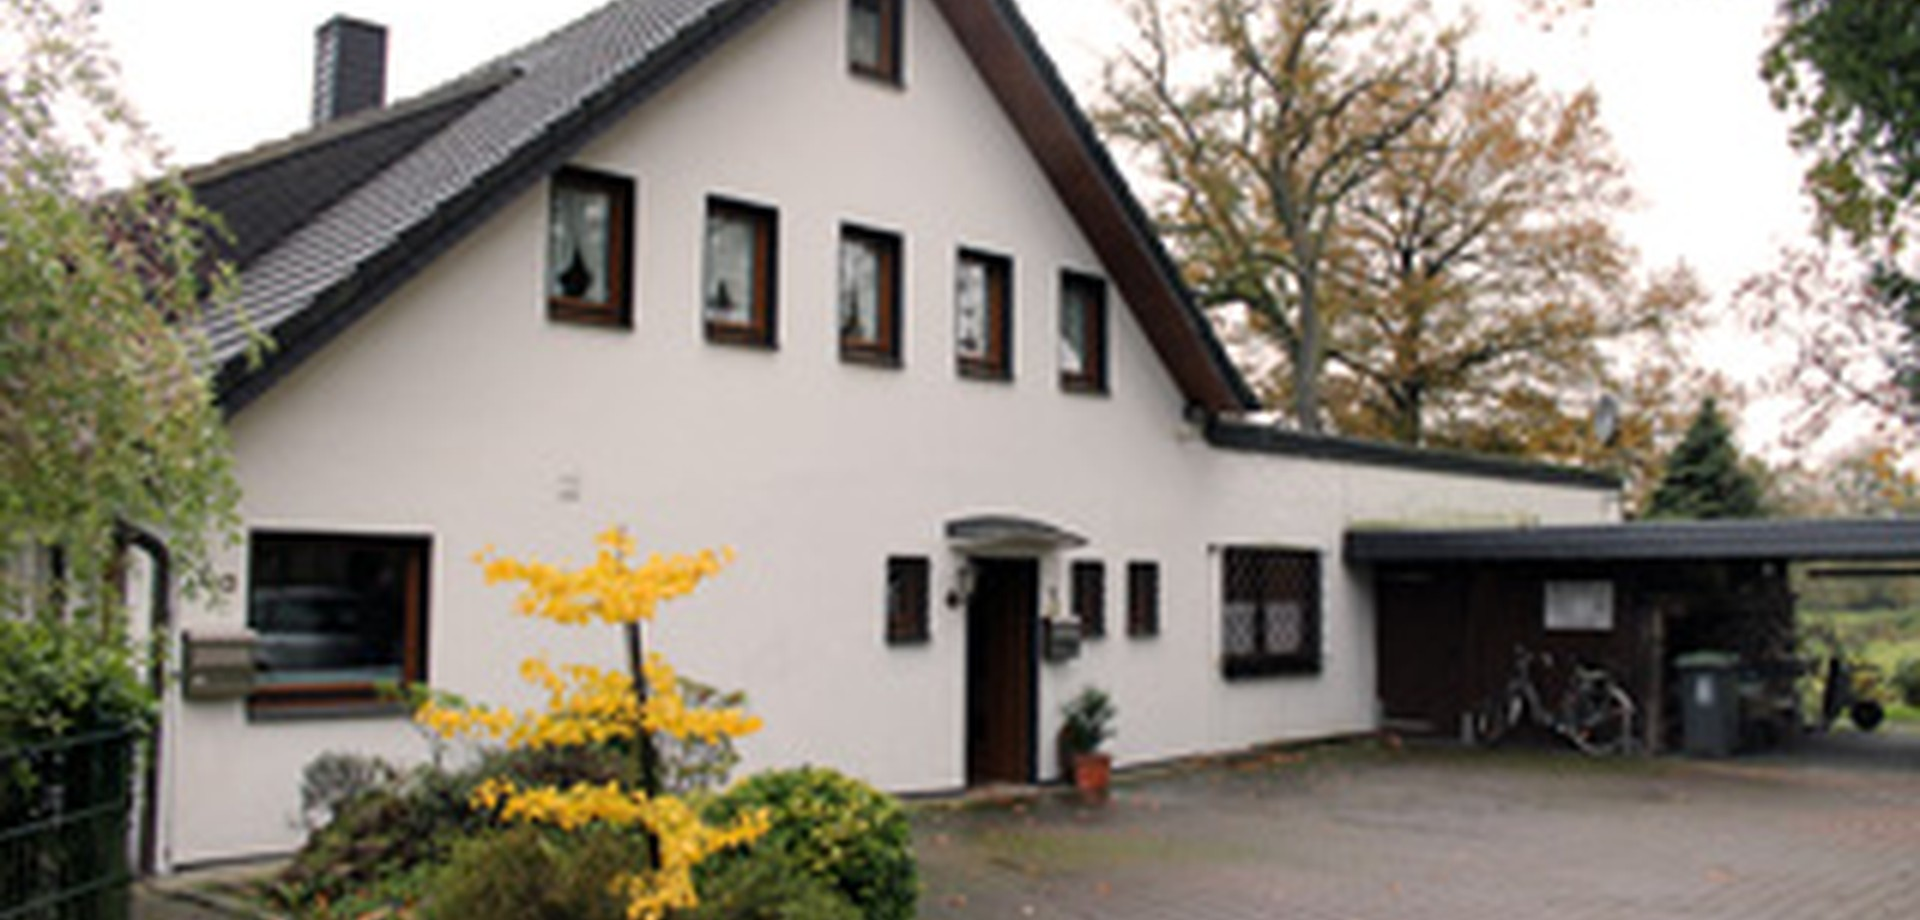 Haus Wohngruppe Stockwiese